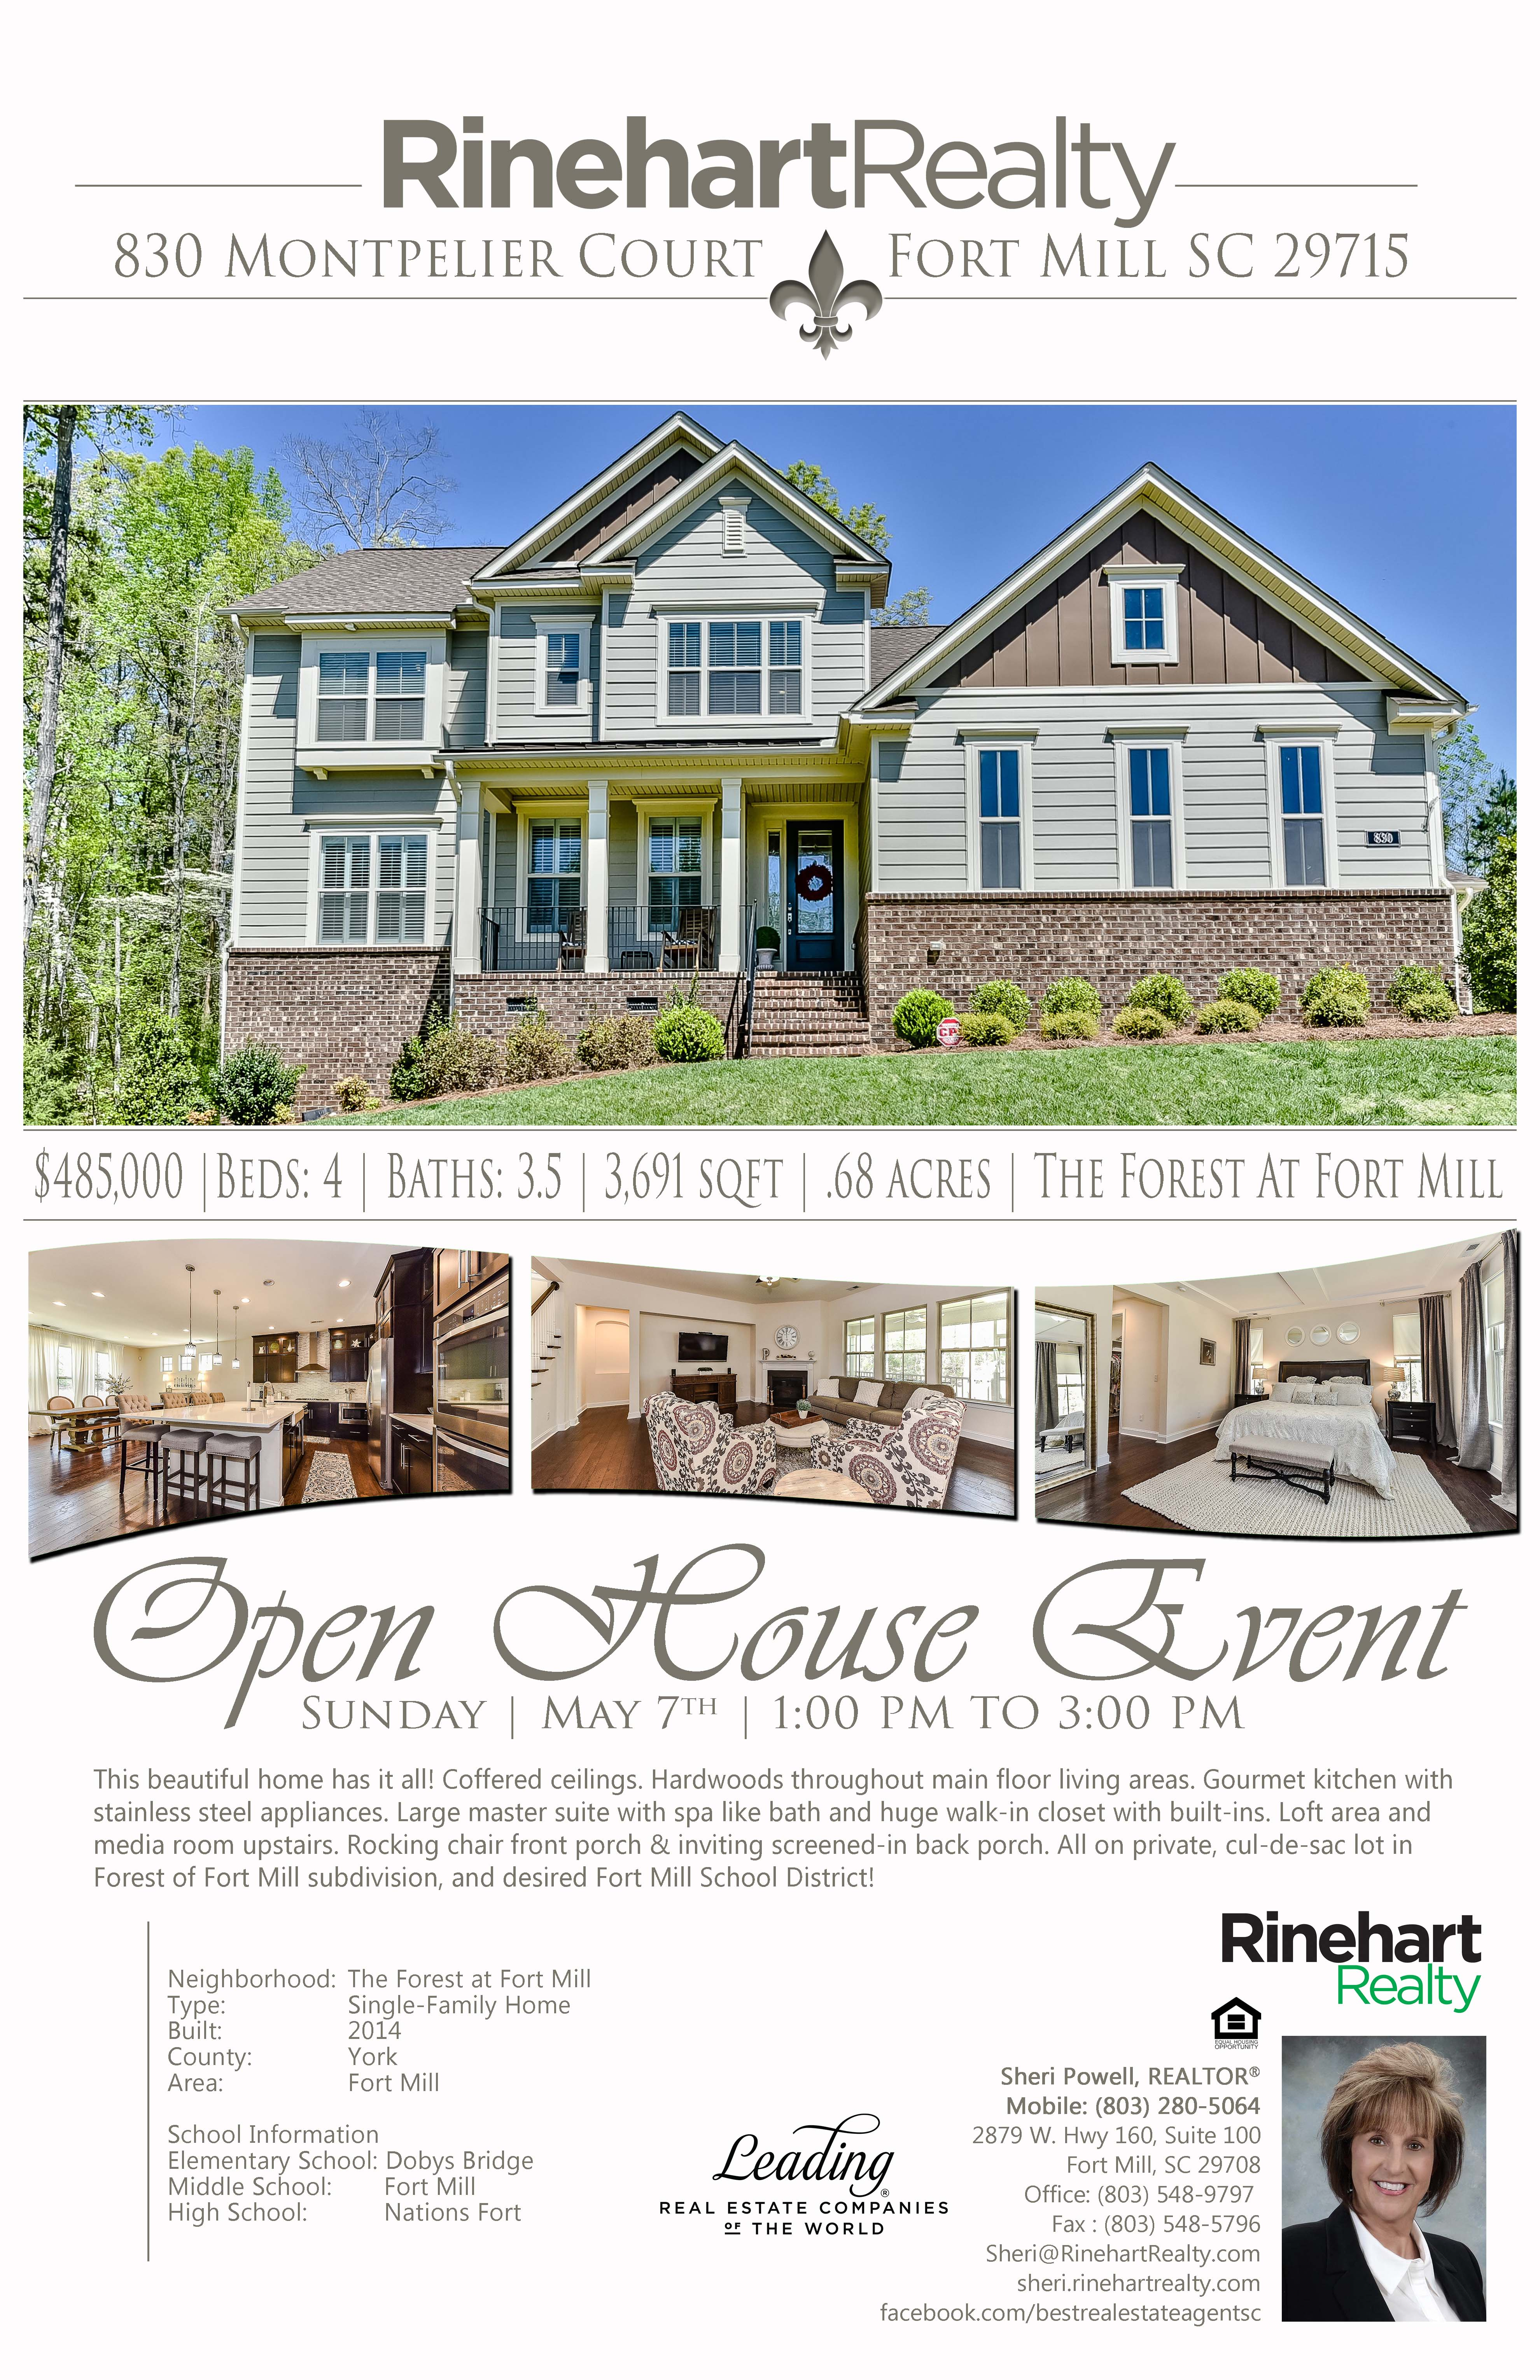 You're invited! Discover Listing Details Here First Open Houses: 4/22 2:00 PM to 5:00 PM 4/23 12:00 PM to 2:00 PM 830 Montpelier Court, Fort Mill, SC 29715 $485,000 | Beds: 4 | Baths: 3.5 | 3,691 sqft | .68 acres This beautiful home has it all! Coffered ceilings. Hardwoods throughout main floor living areas. Gourmet kitchen with stainless steel appliances. Large master suite with spa like bath and huge walk-in closet with built-ins. Loft area and media room upstairs. Rocking chair front porch & inviting screened-in back porch. All on private, cul-de-sac lot in Forest of Fort Mill subdivision. Hosted by: Sheri Powell, REALTOR® Mobile: (803) 280-5064 Sheri@RinehartRealty.com sheri.rinehartrealty.com facebook.com/bestrealestateagentsc